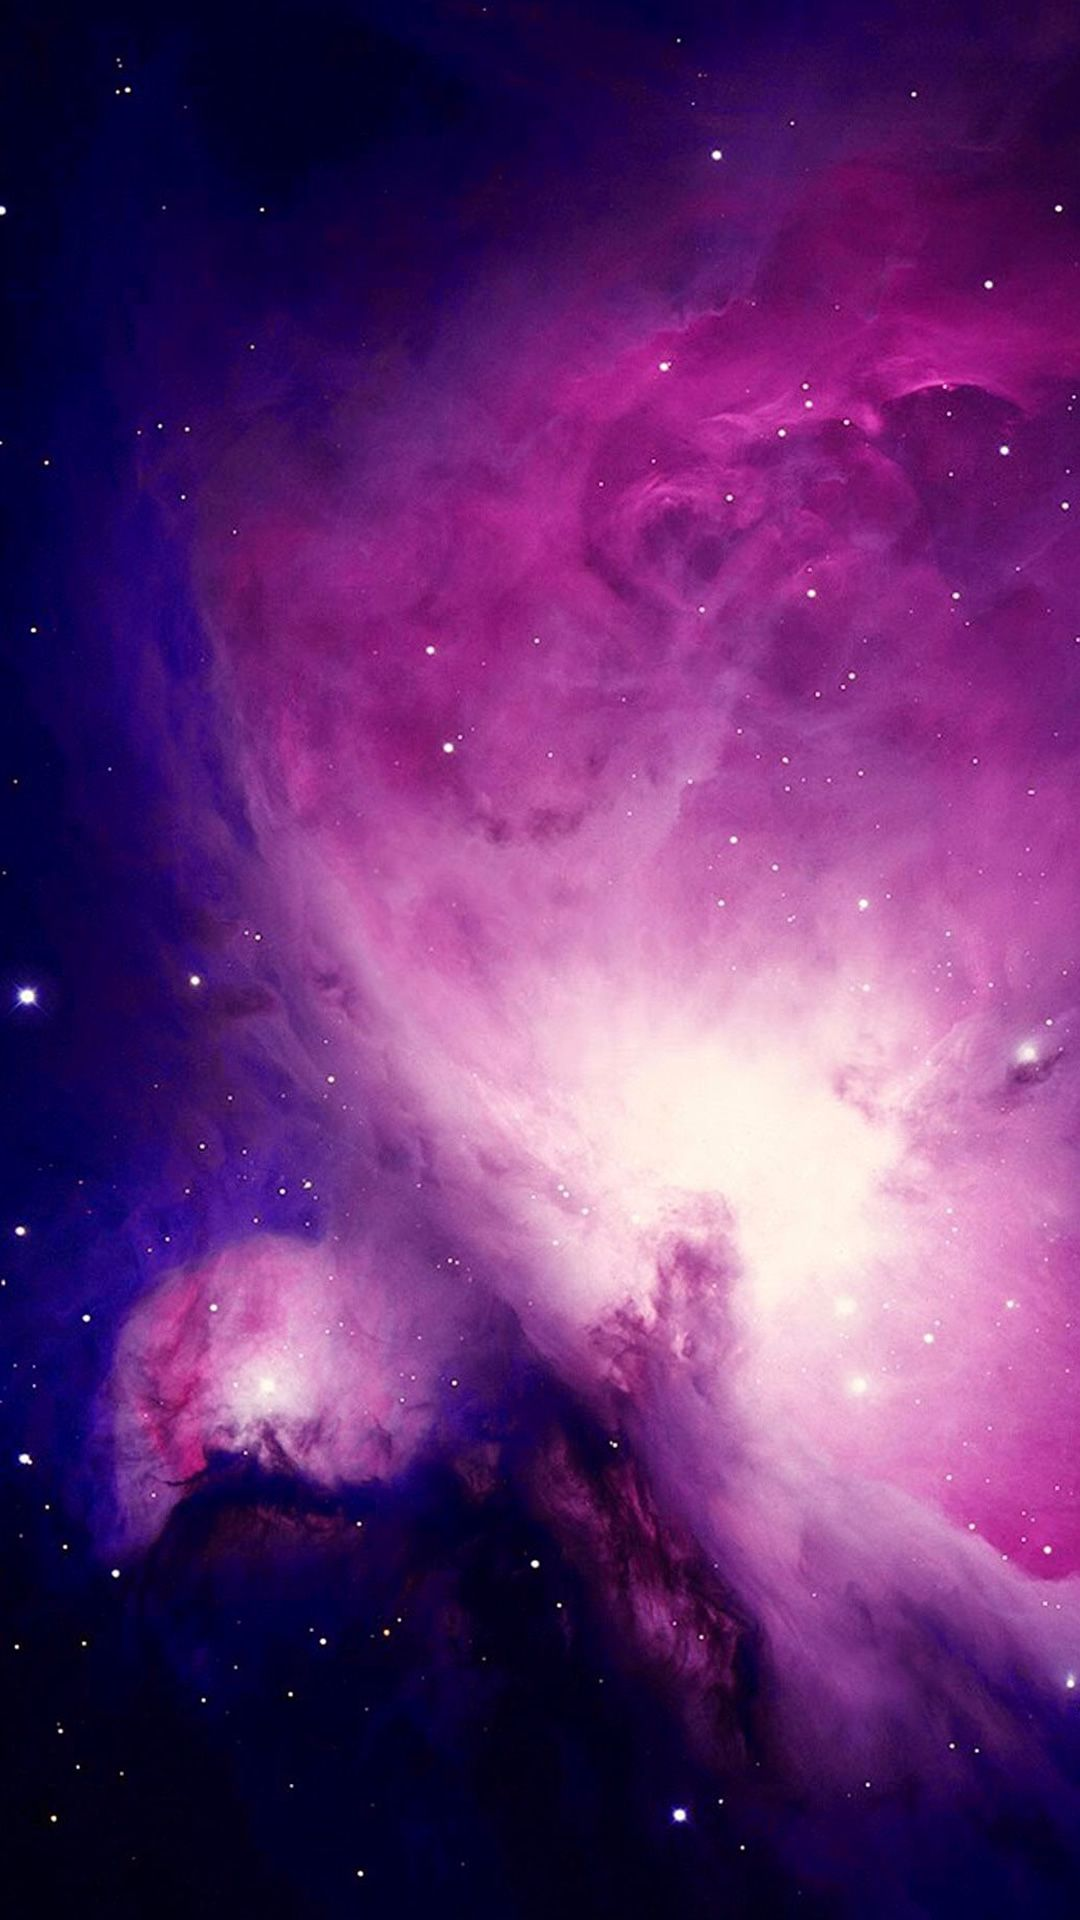 Spectacular Out Space Iphone 6 Plus Wallpaper Space Iphone Wallpaper Nebula Galaxy Wallpaper